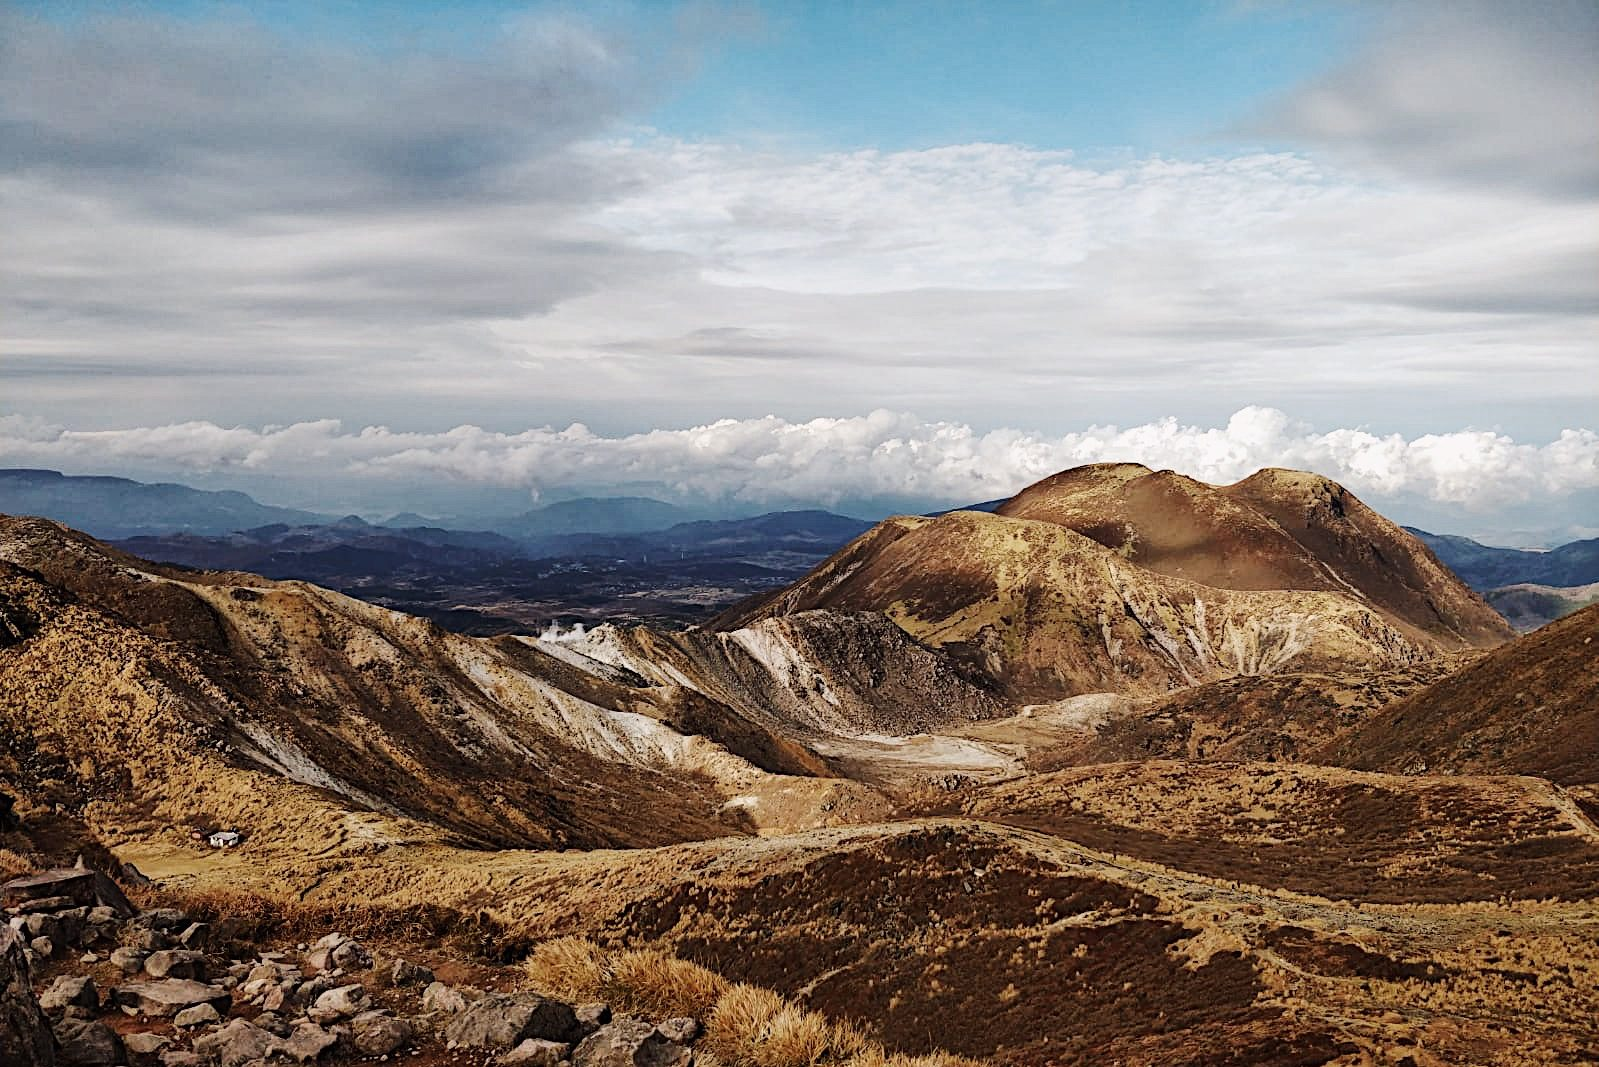 Climbing the Kuju Mountains: A journey to the highest peak in Kyushu